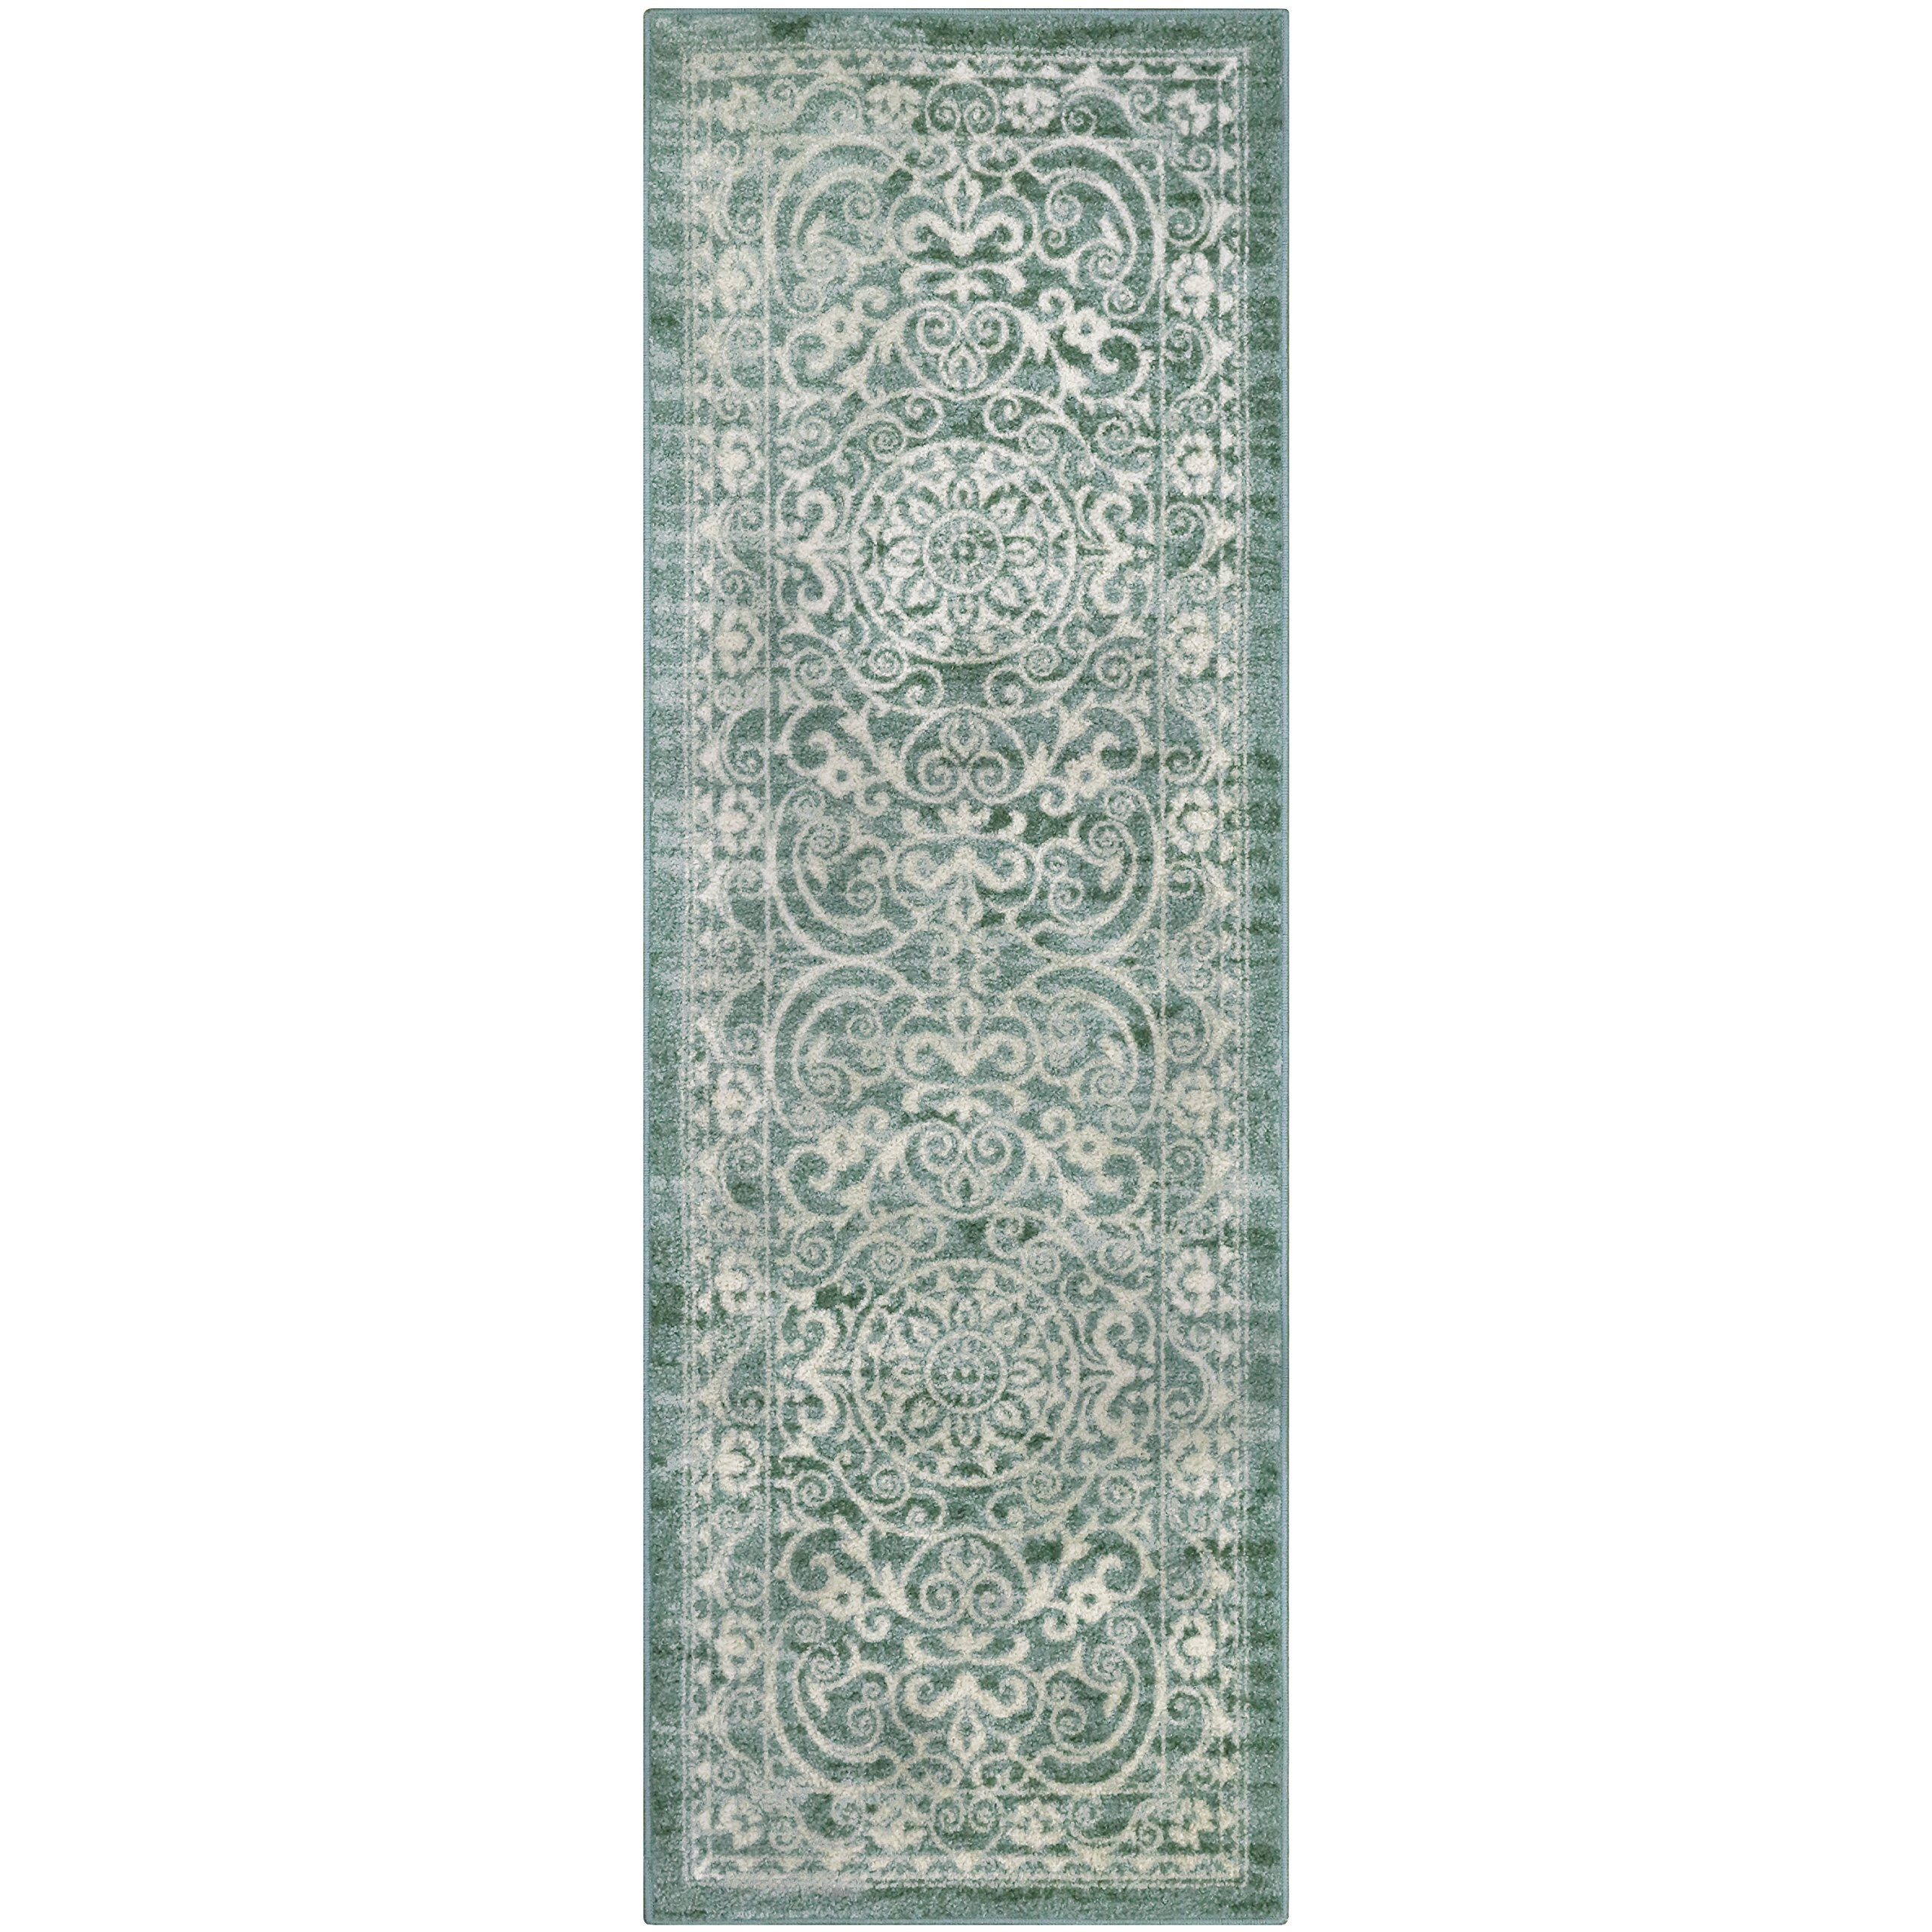 Maples Rugs Runner Rug - Pelham 24'x72' Non Skid Hallway Carpet Entry Rugs Runners [Made in USA] for Kitchen and Entryway, Light Spa